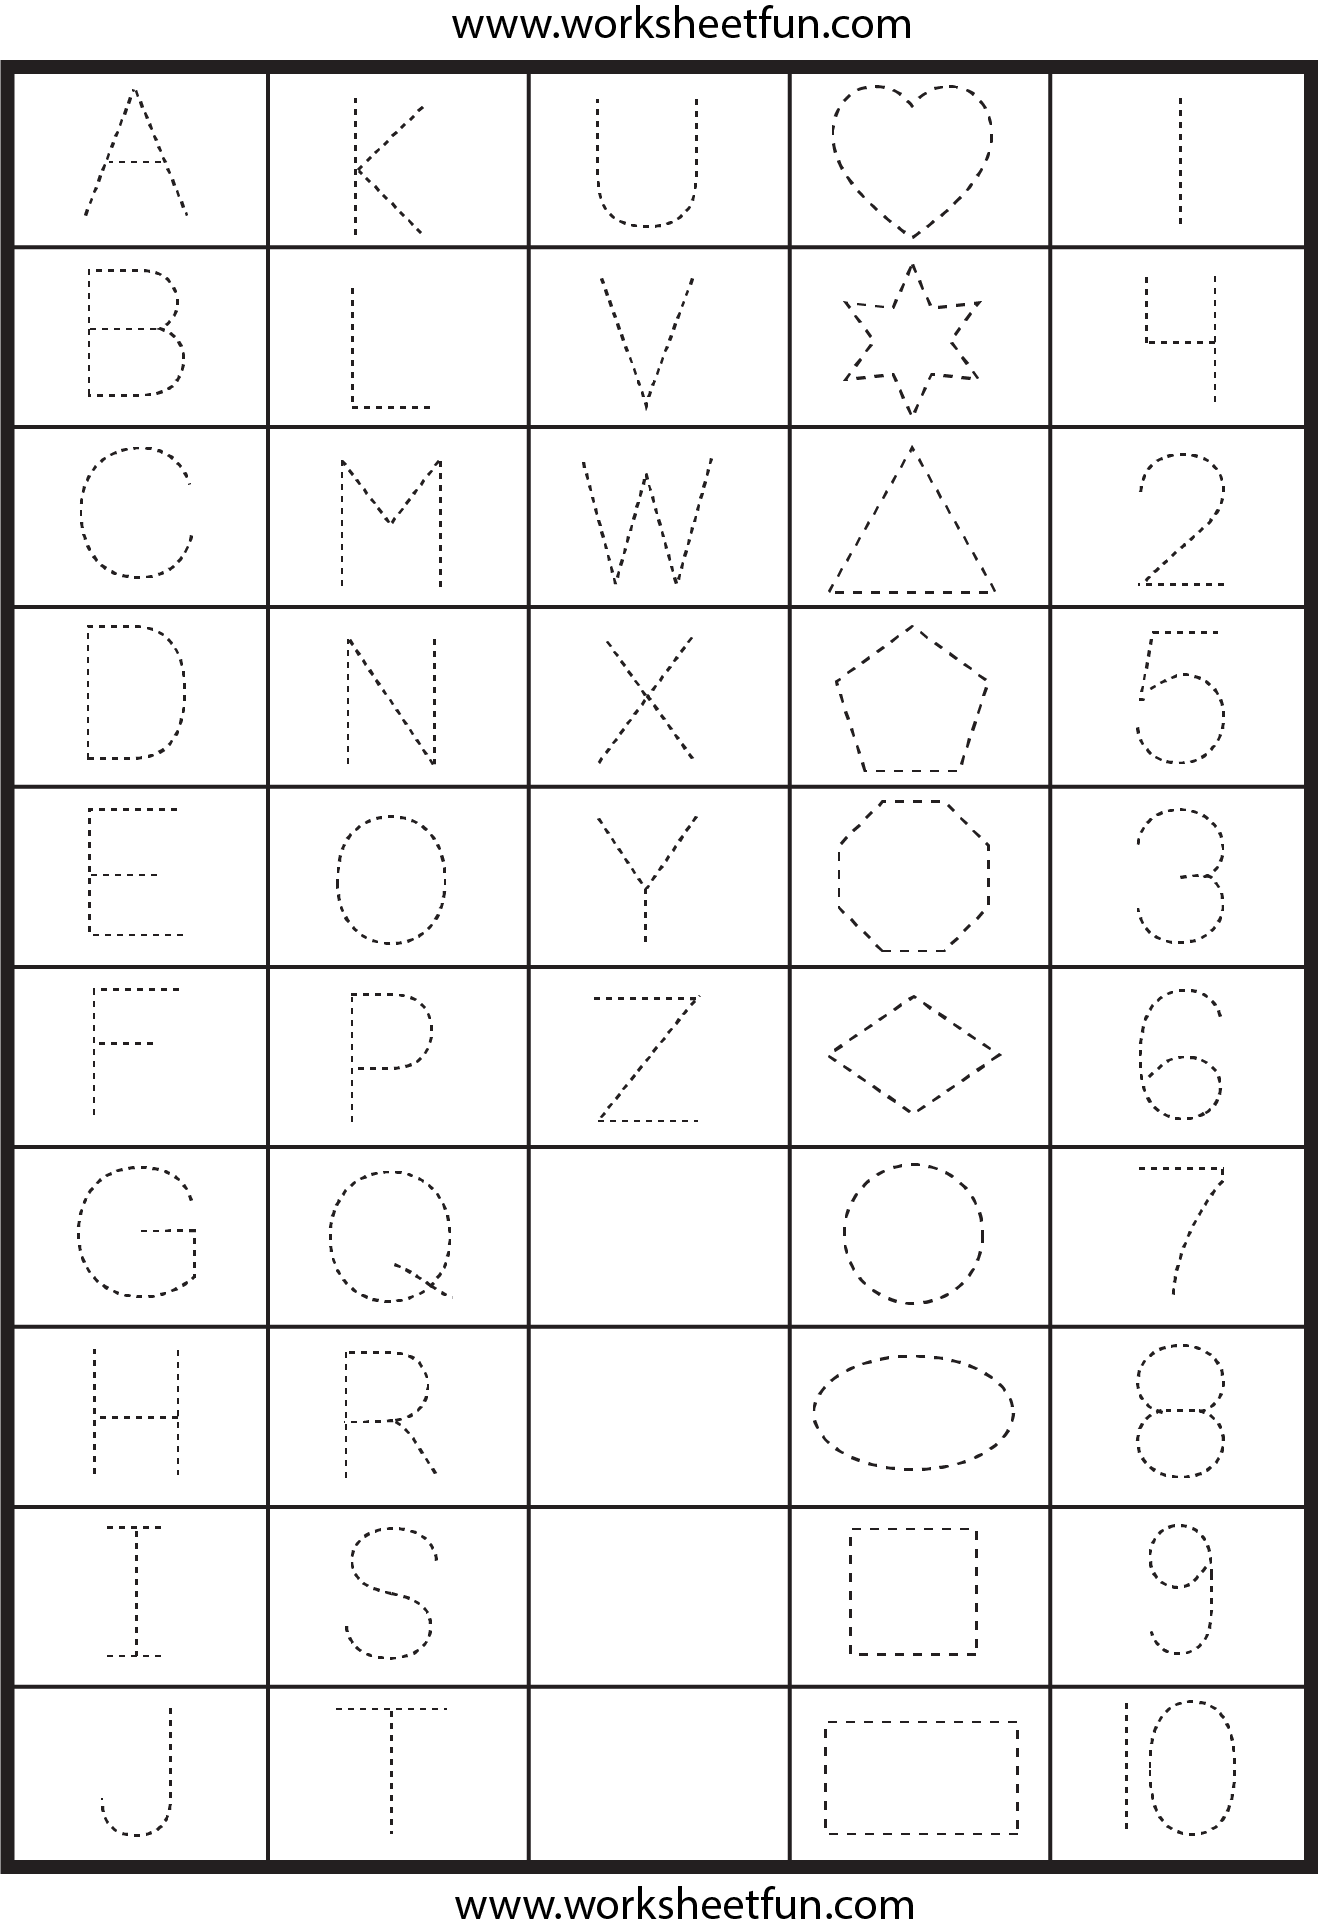 worksheet Preschool Worksheets Age 4 free preschool worksheets age 3 abitlikethis shapes tracing printable worksheetfun